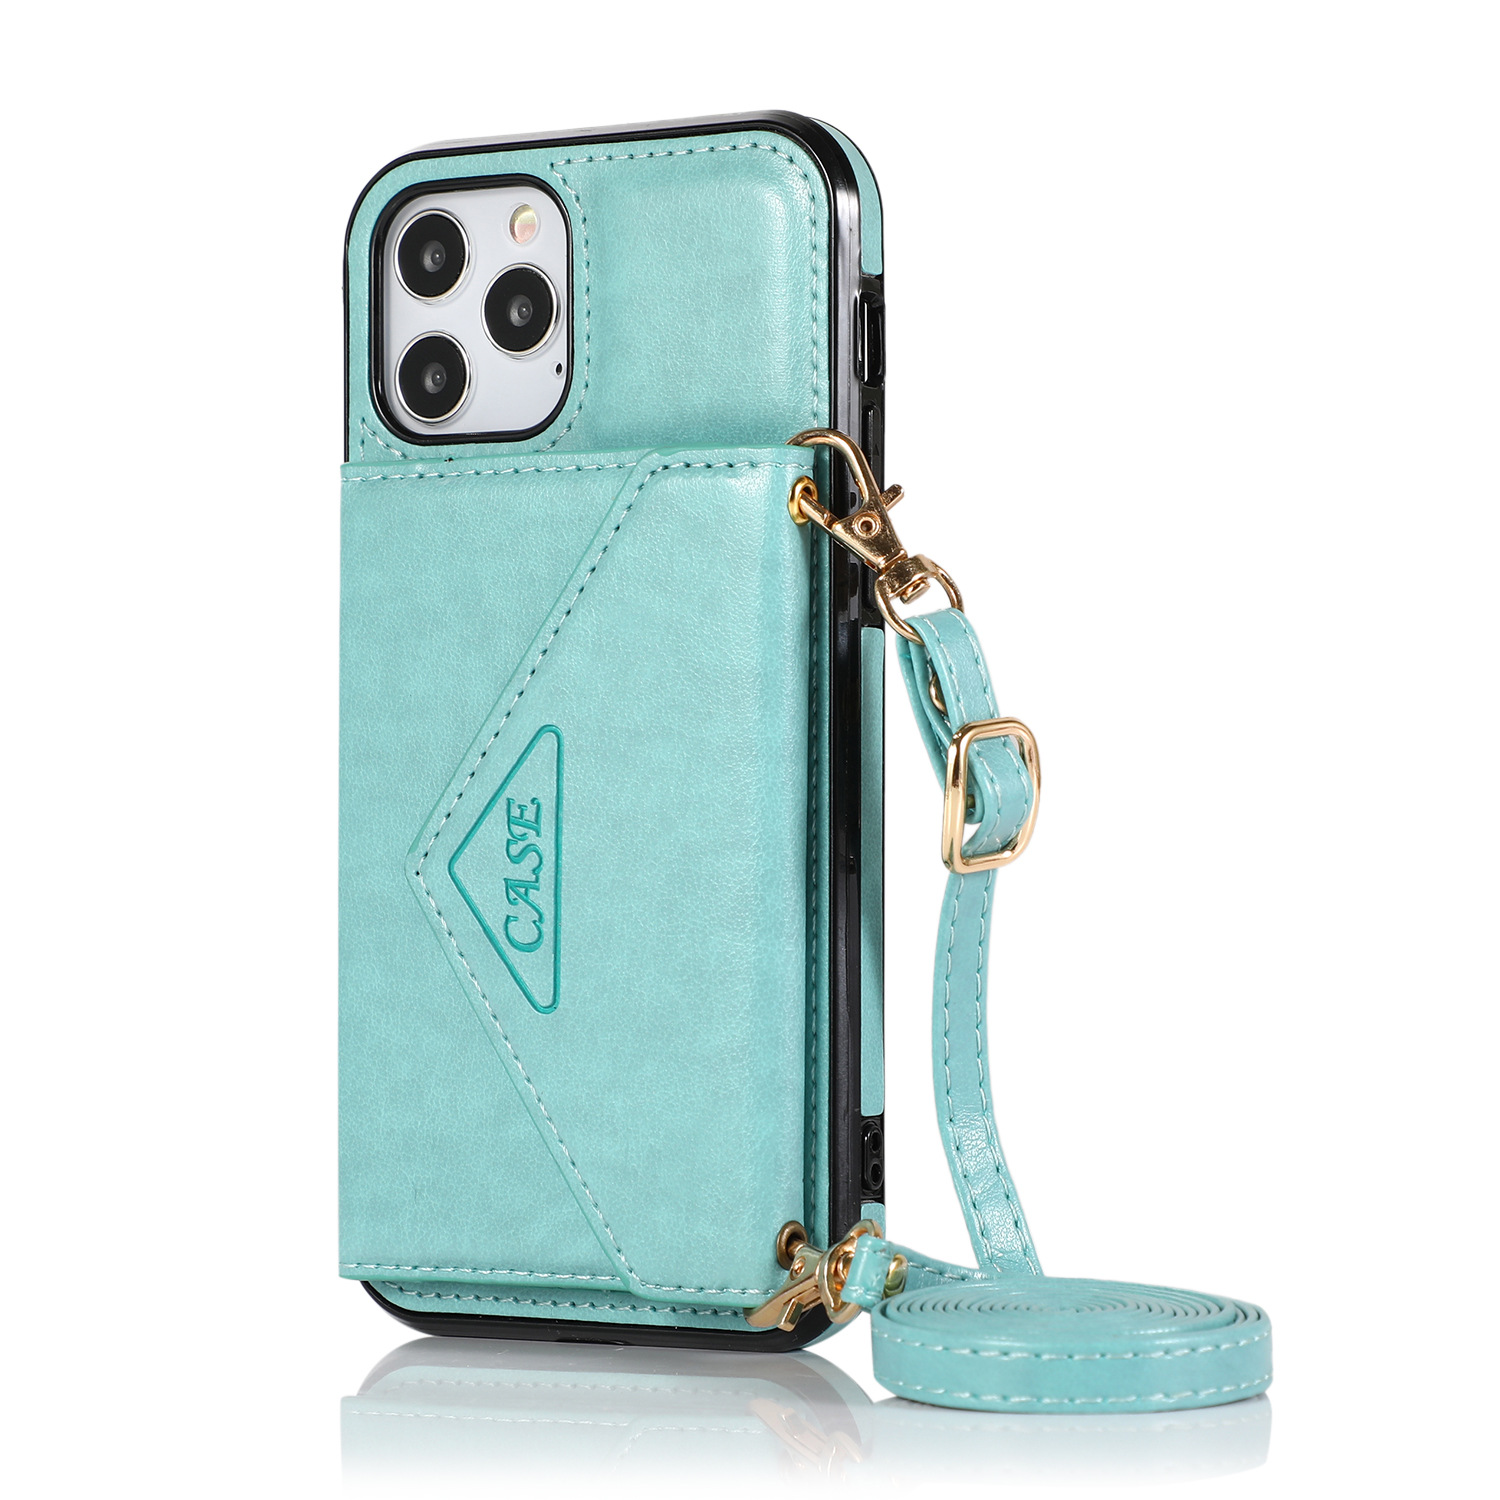 Mobile Phone Case Protective Case Cover For Iphone12/12 Pro Messenger Bag Mint Green